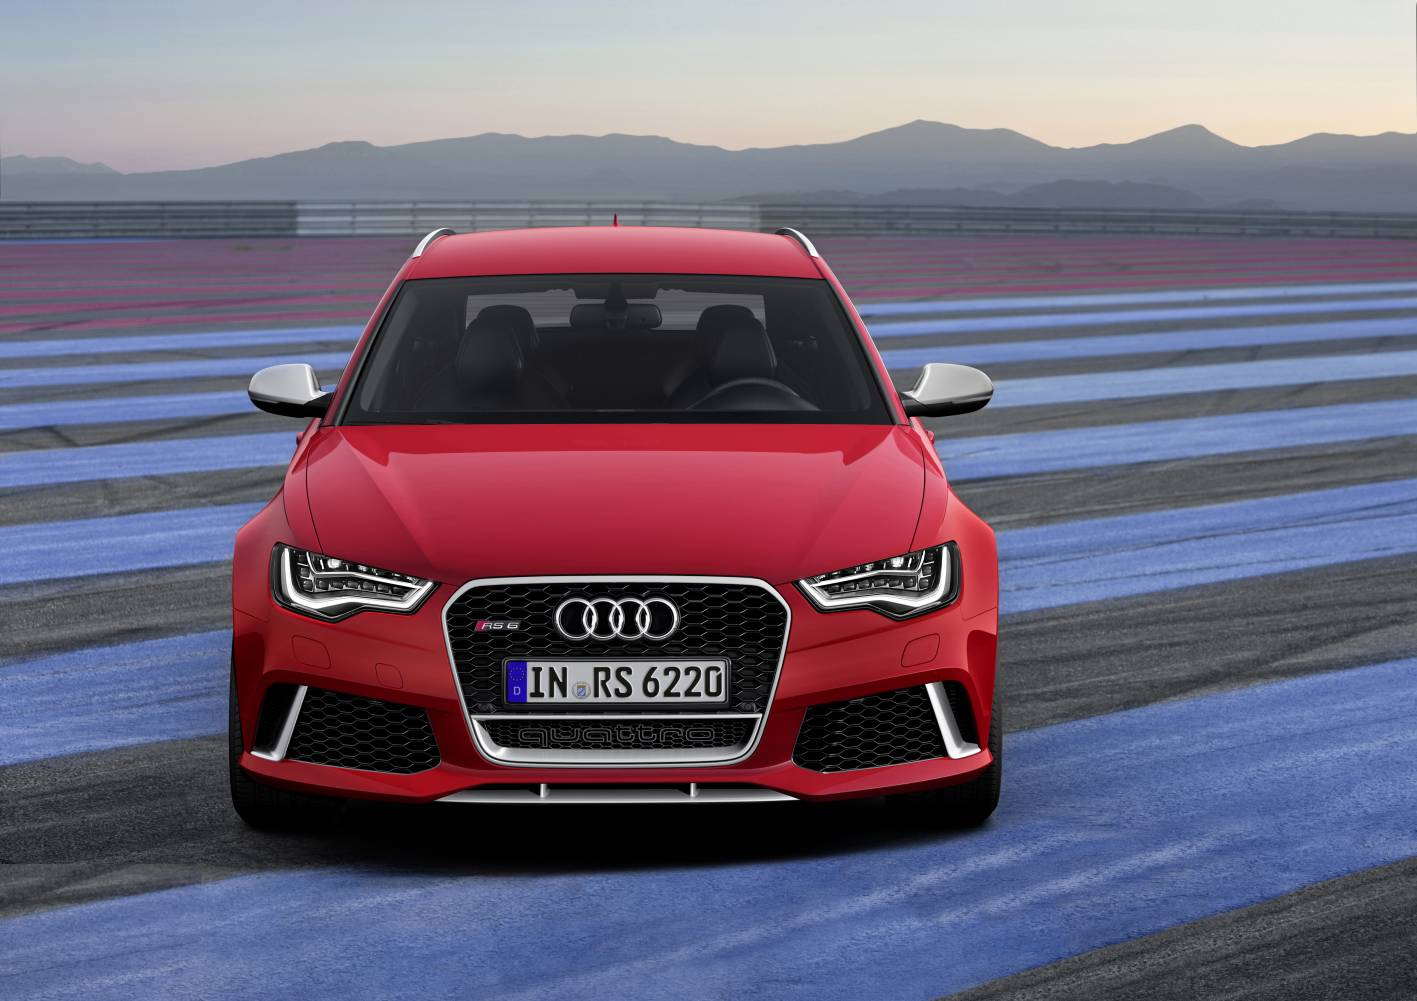 2013 Audi RS6 Avant unveiled. 0-100km/h in 3.9s - ForceGT.com